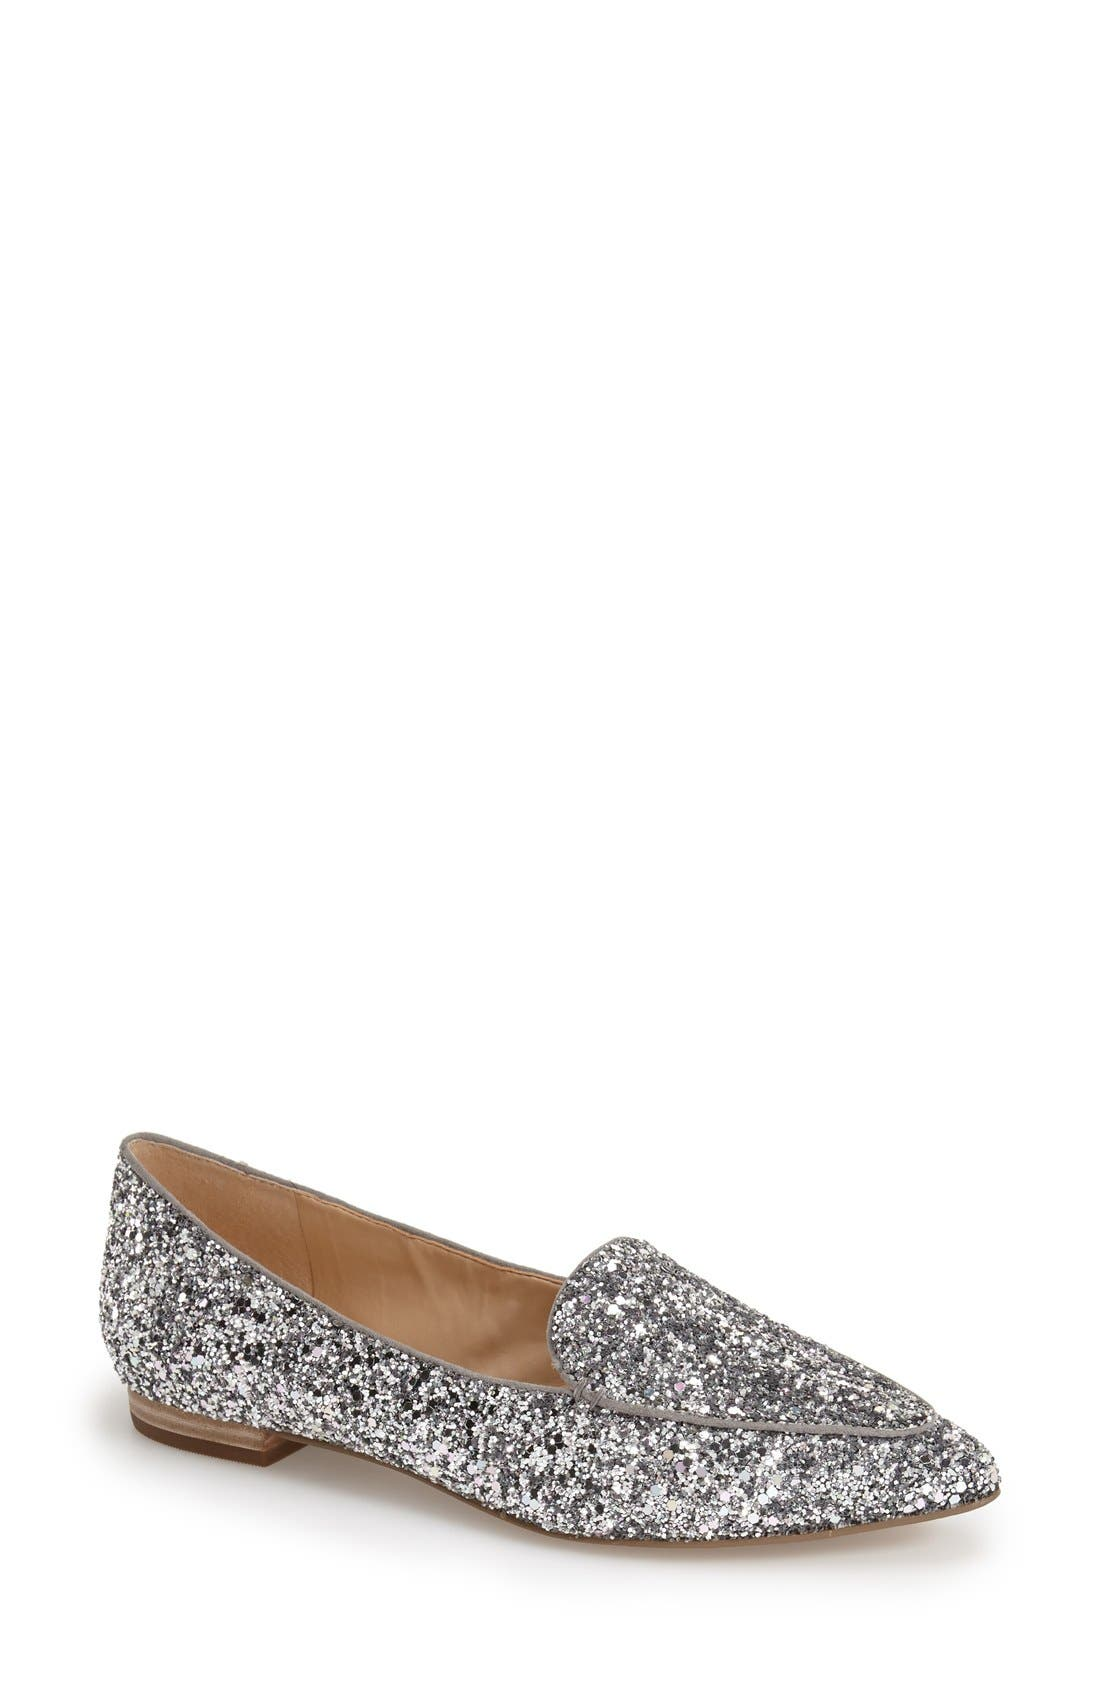 'Cammila' Pointy Toe Loafer,                             Main thumbnail 1, color,